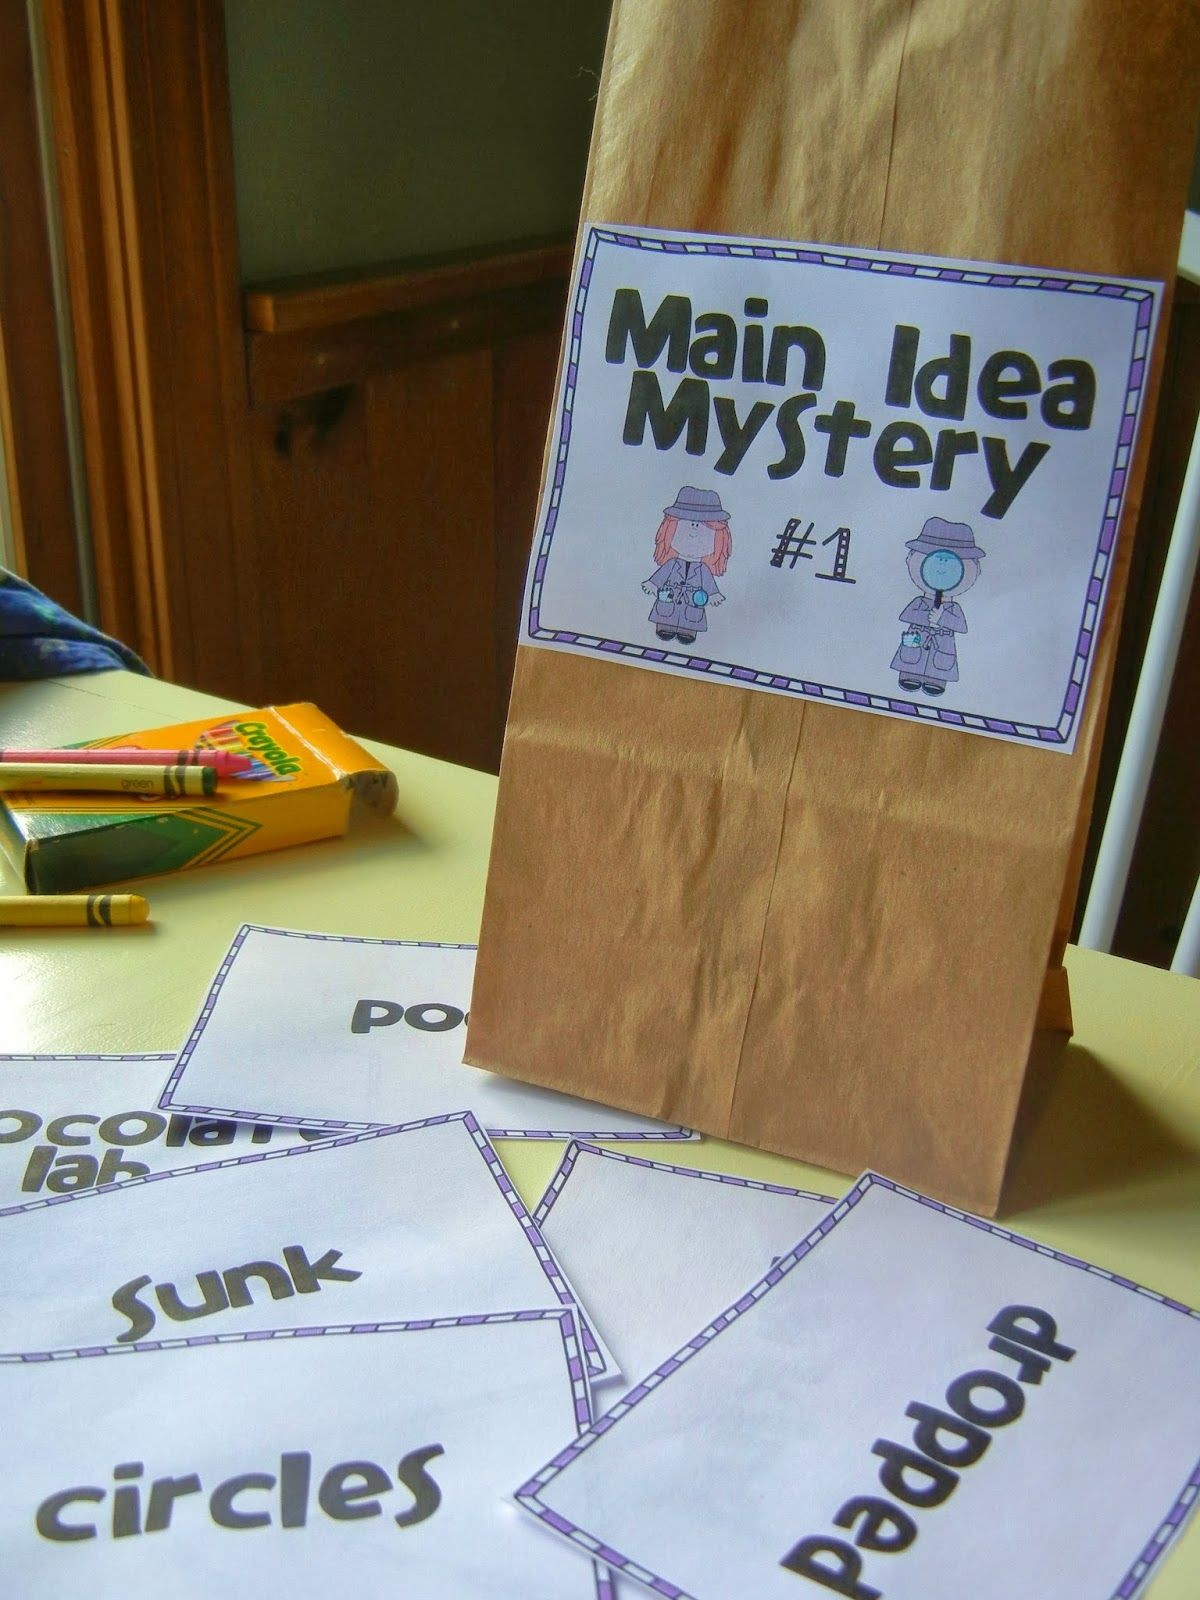 The Puzzling Main Idea Contains Directions And Materials